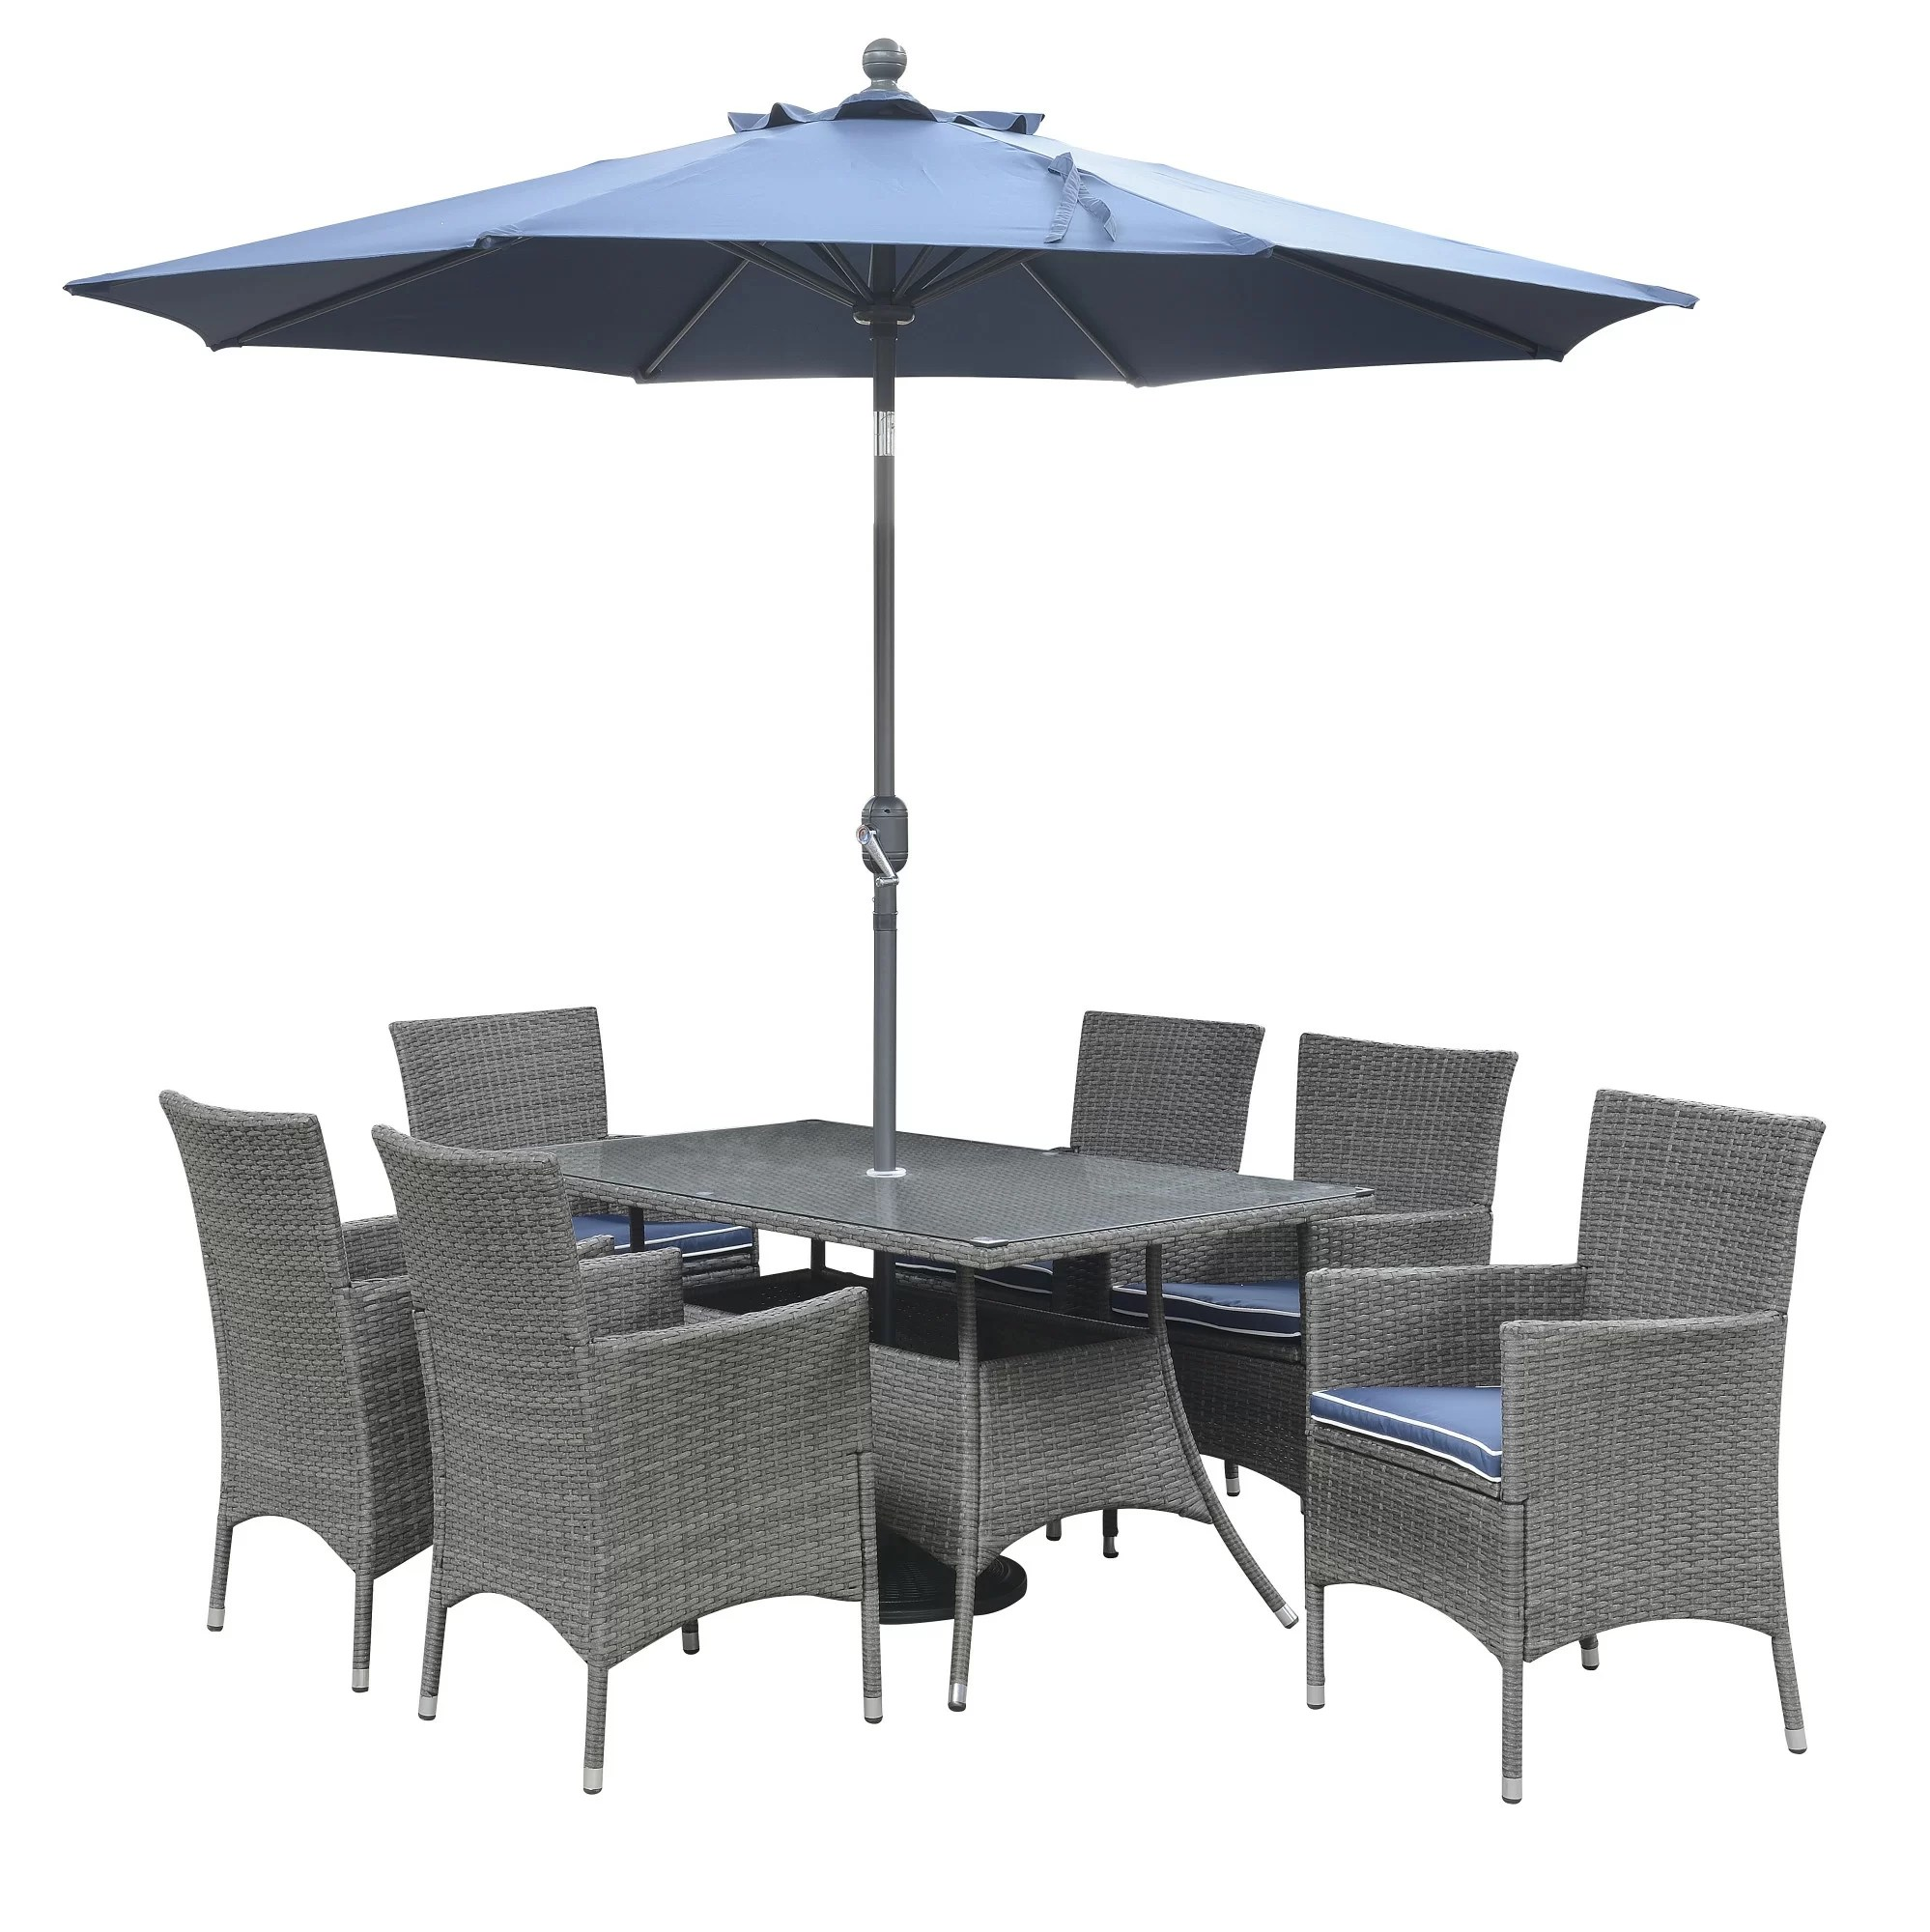 chair covers morecambe rent chairs and tables for cheap darby home co 7 piece dining set with cushions wayfair